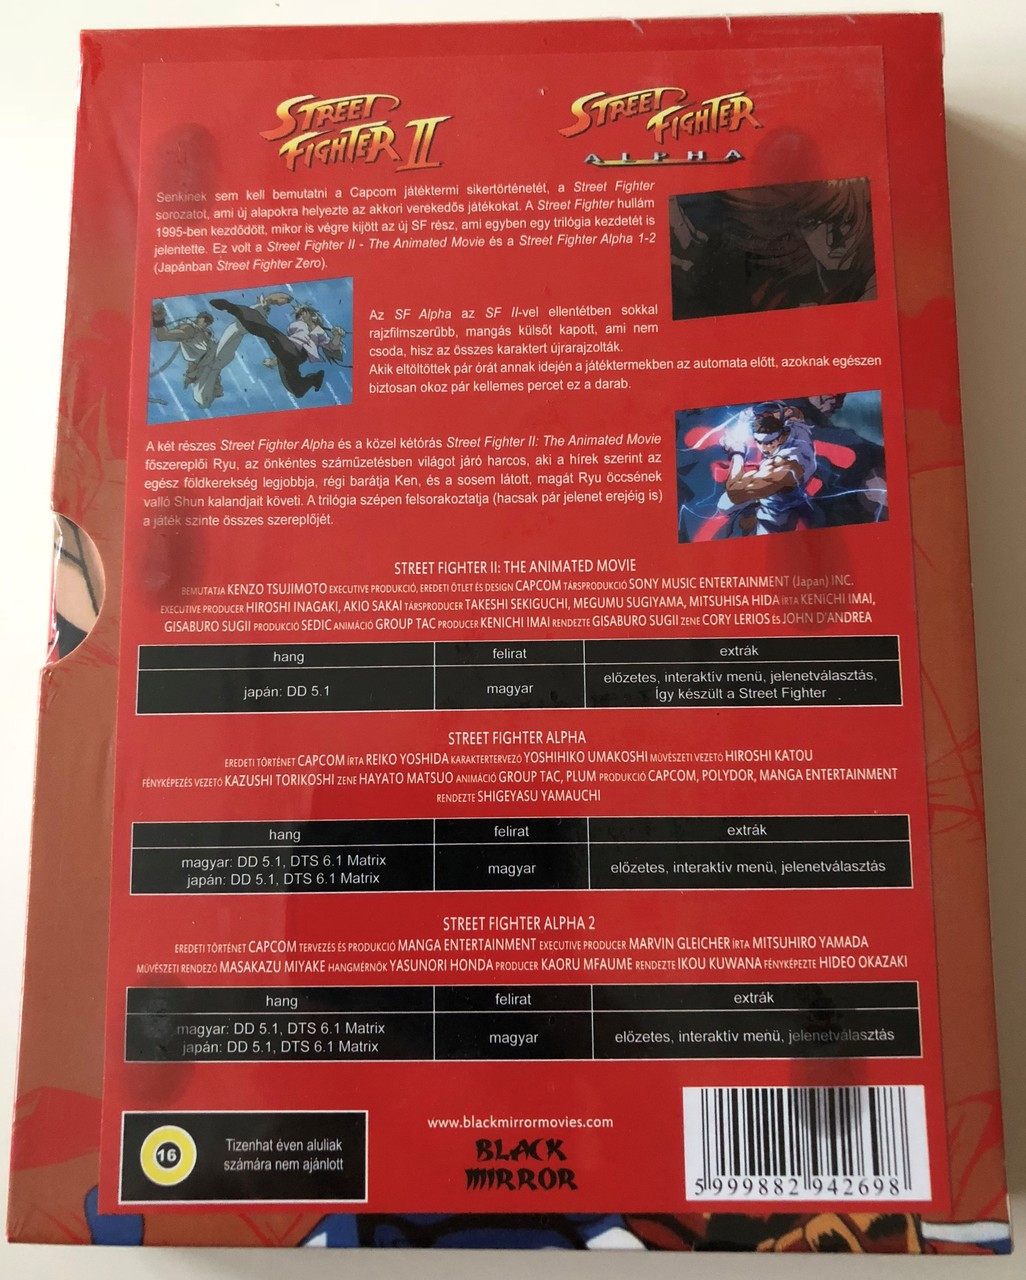 Street Fighter Dvd Box 2009 Street Fighter Ii The Animated